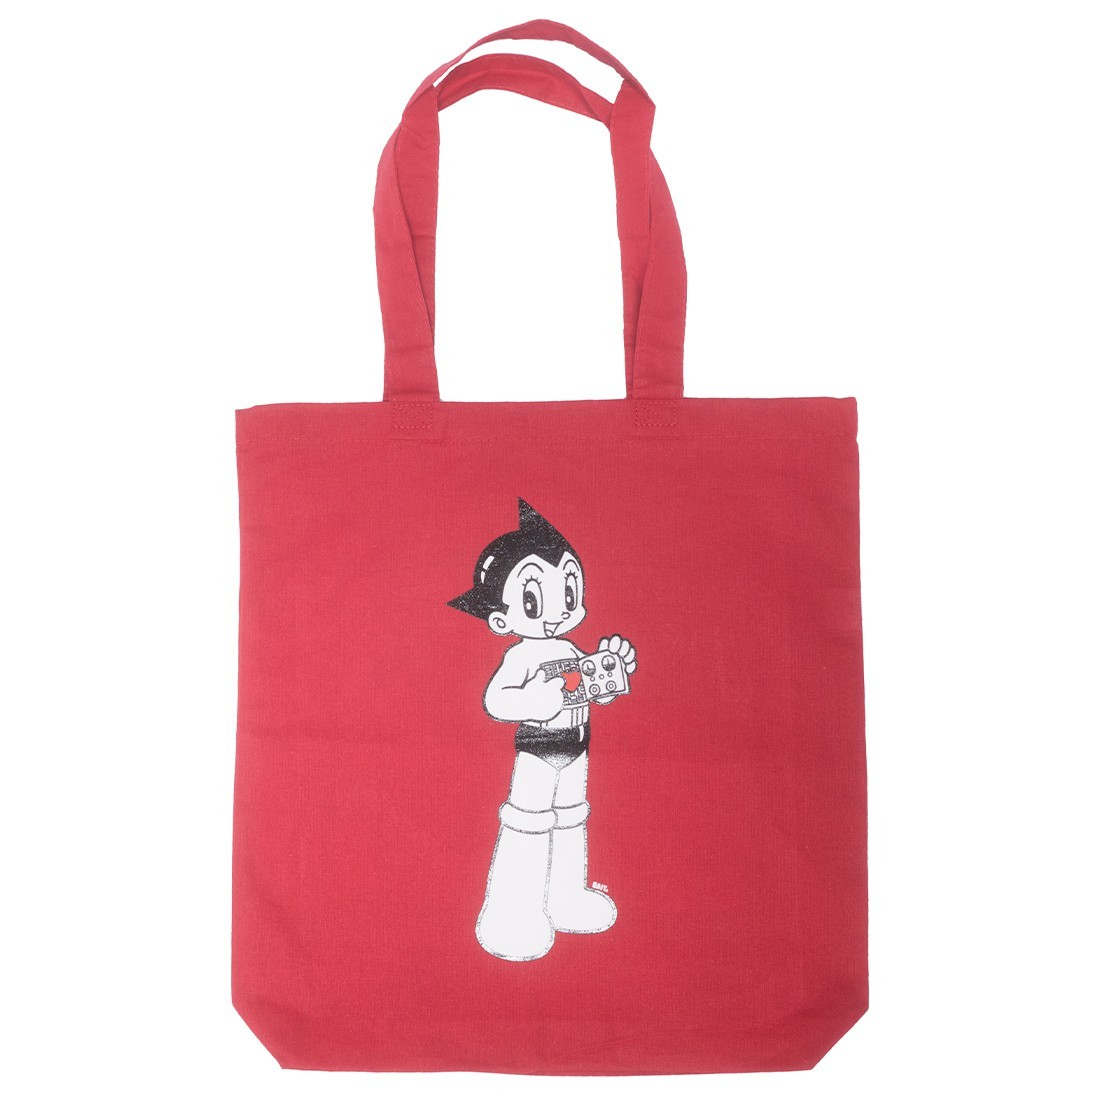 BAIT x Astro Boy Heart Tote Bag (red)